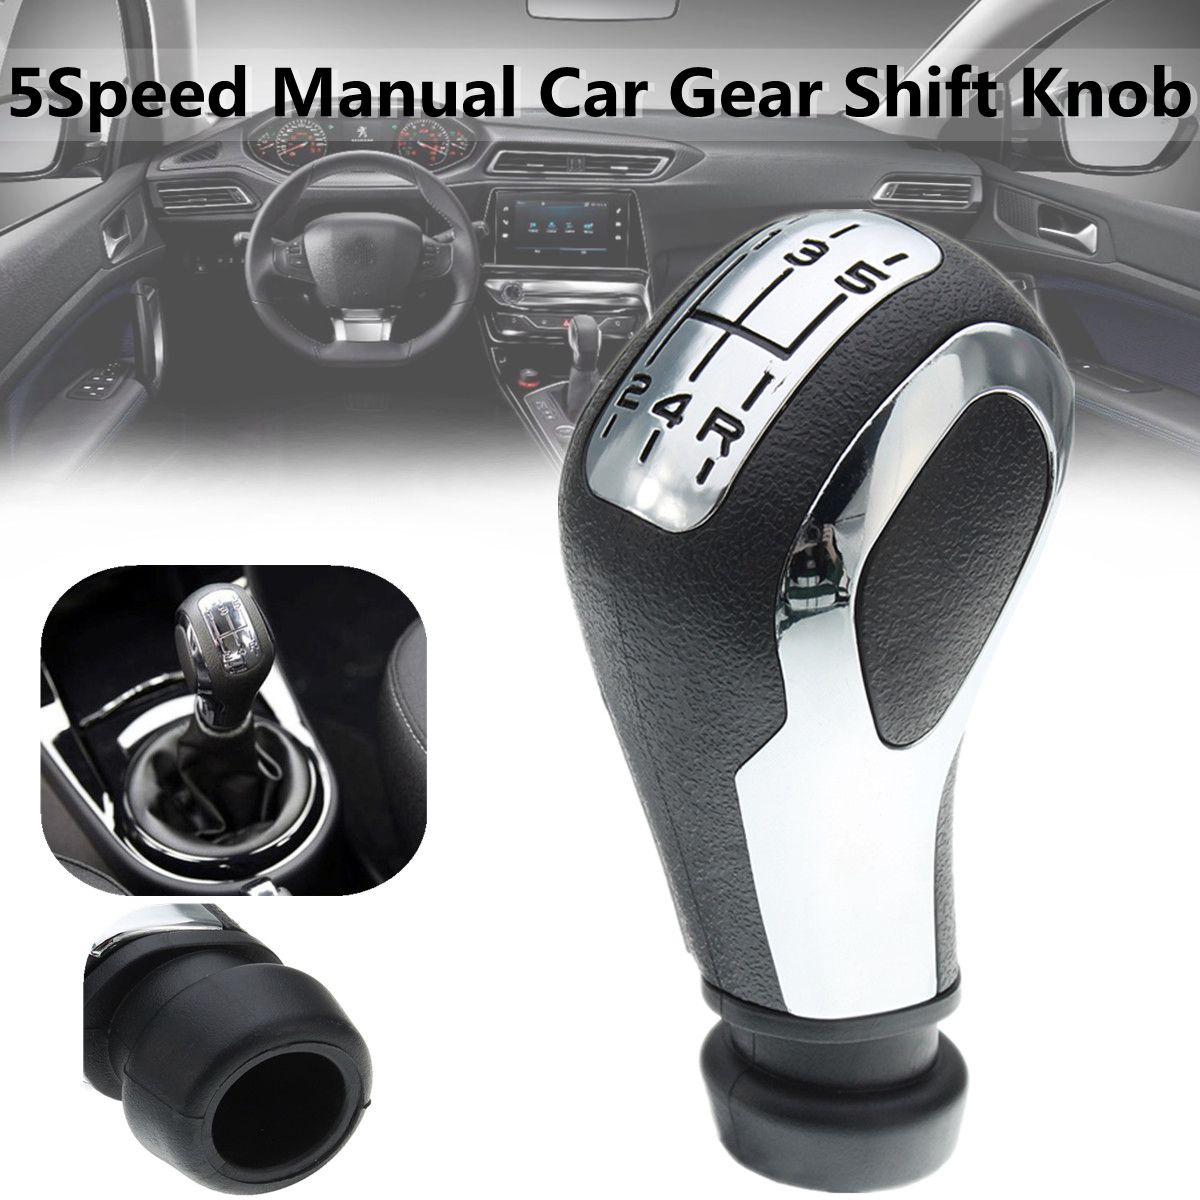 5 Speed Manual Car Gear Shift Knob Stick For Peugeot 106 206 206CC 207 307 407 стоимость